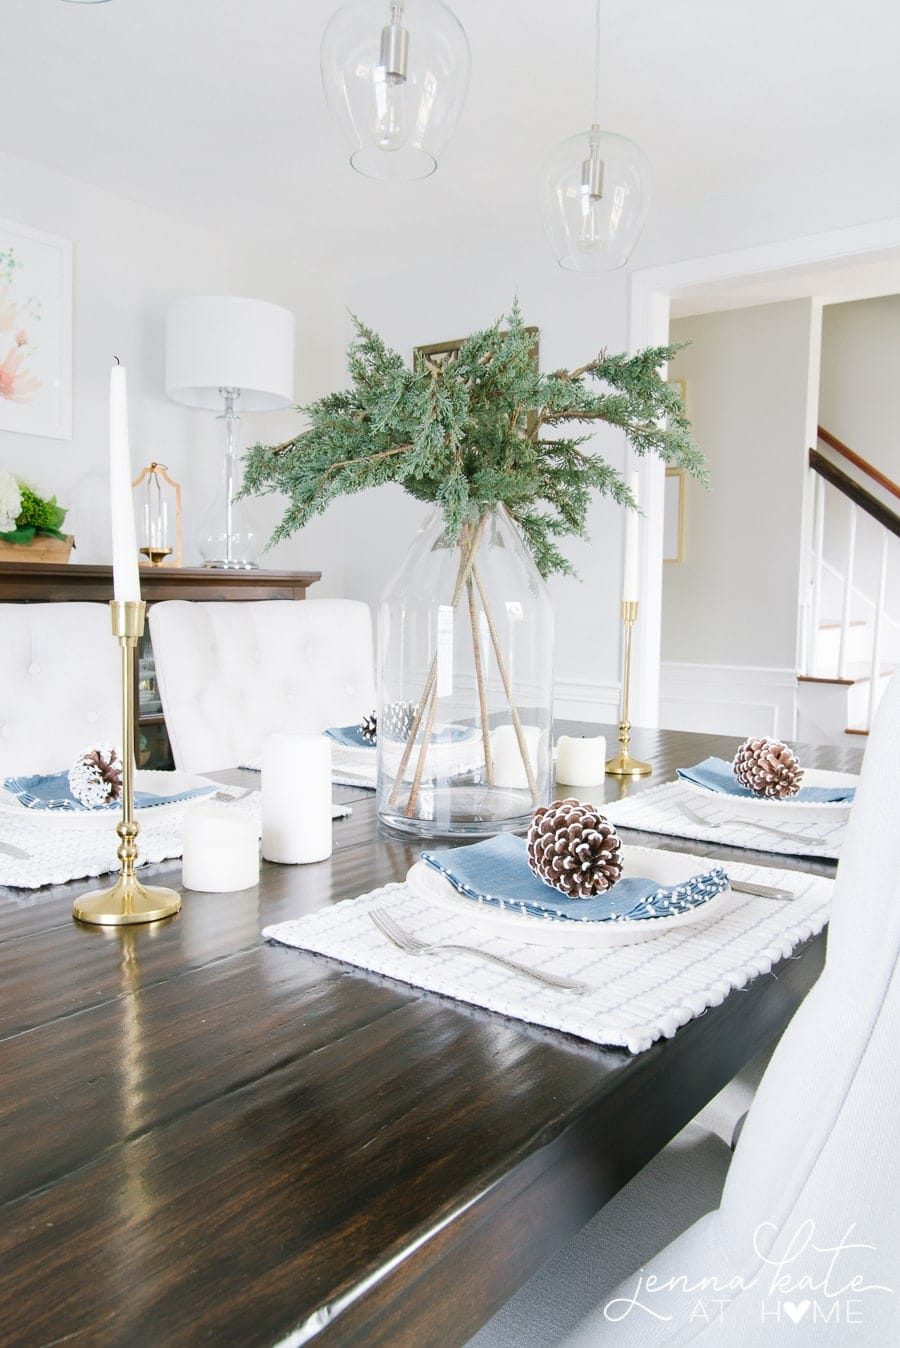 A collection of items on a dining table for a simple winter tablescape